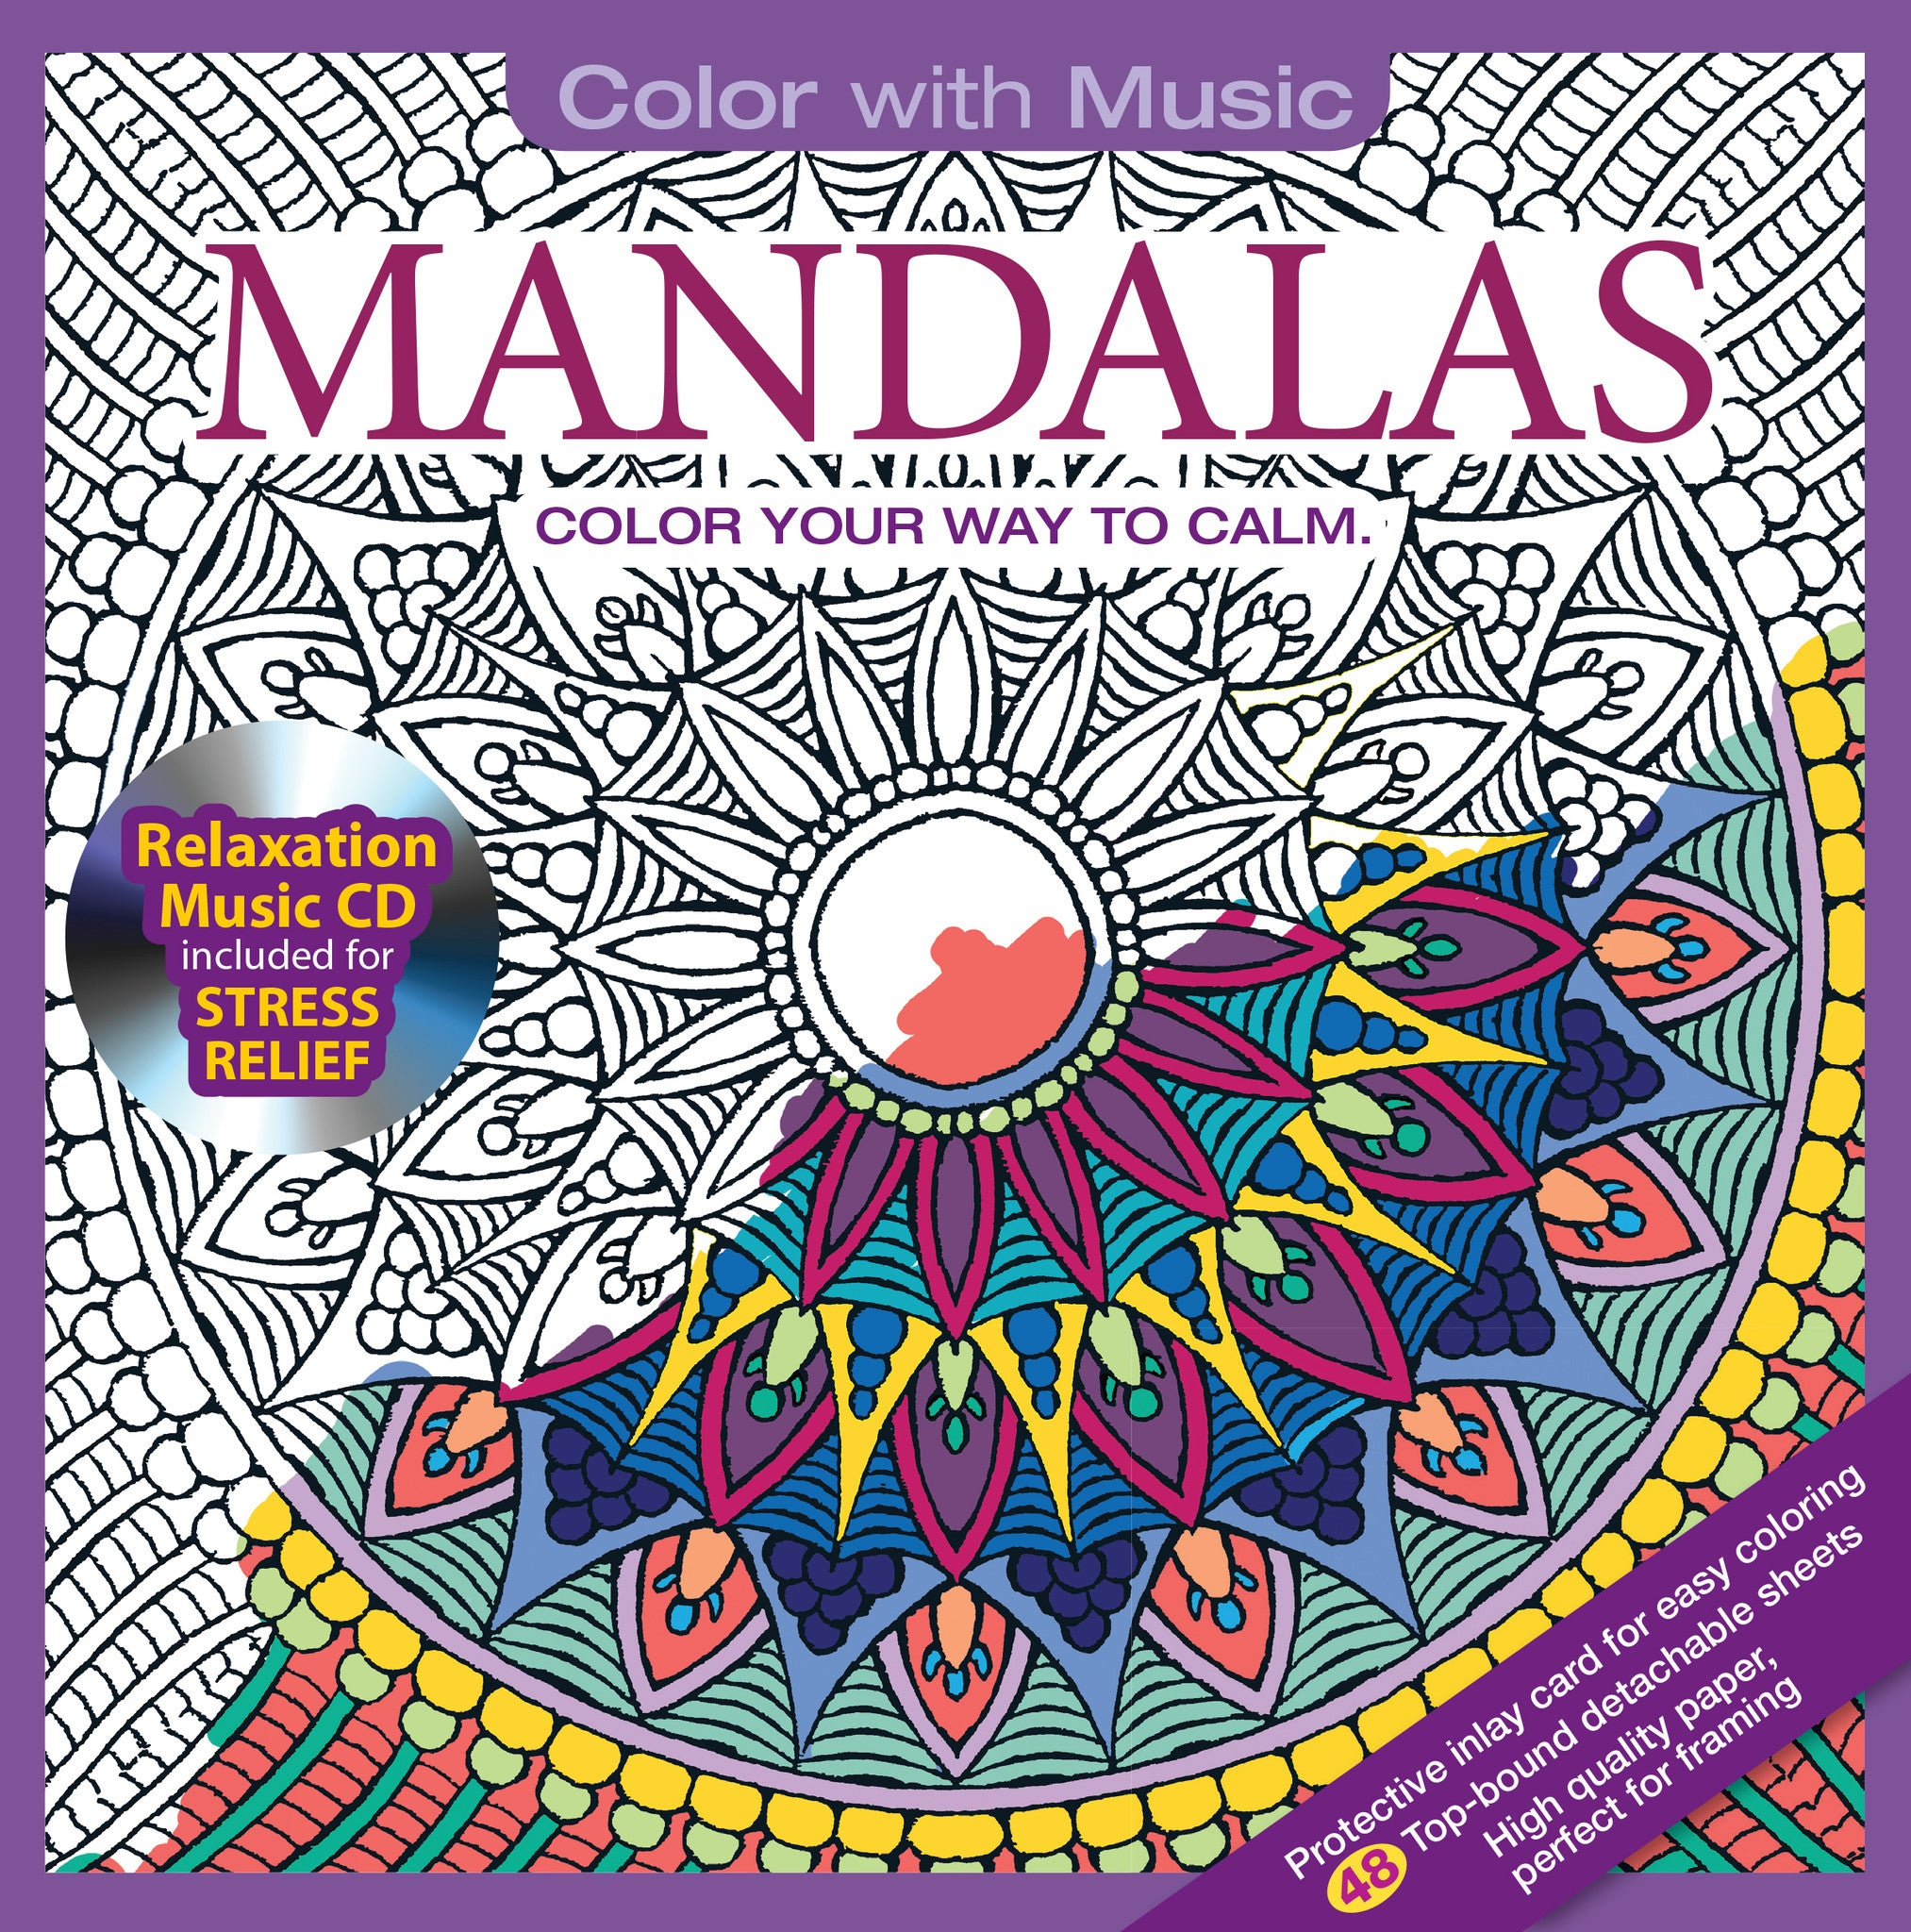 Coloring Book Album Cover : Mandalas Adult Coloring Book With Relaxation CD Color With Music